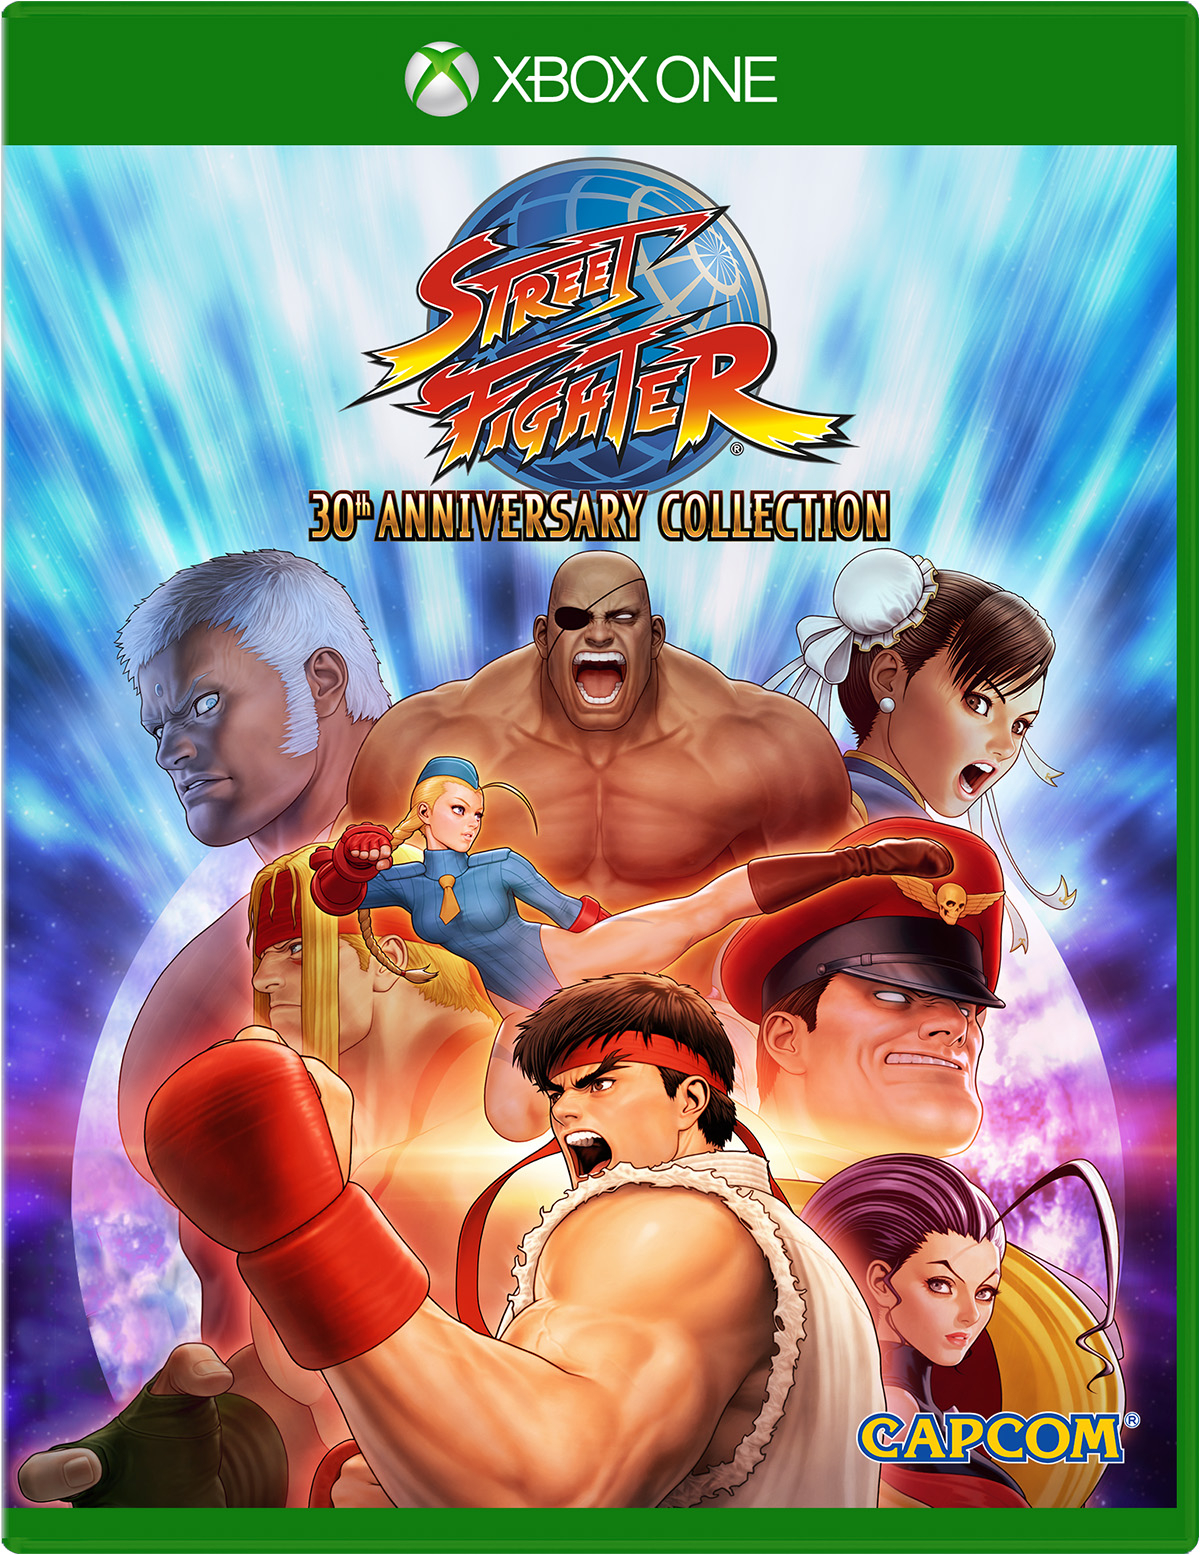 Street Fighter 30th Anniversary Collection for Xbox One QH4-00895